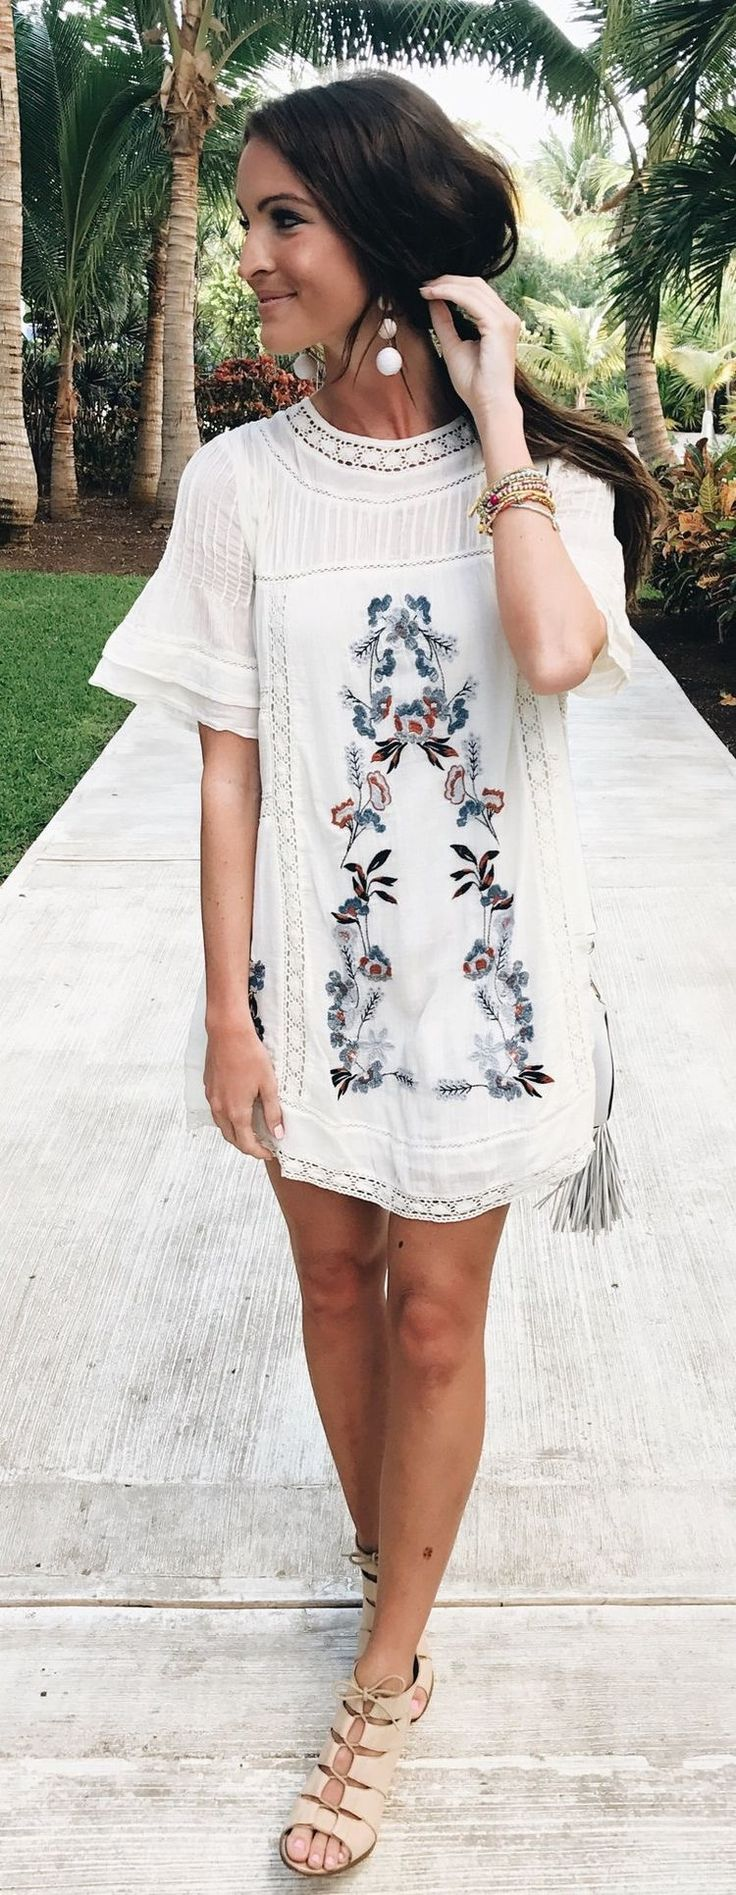 Find More at => http://feedproxy.google.com/~r/amazingoutfits/~3/vNMgyJfQ9-0/AmazingOutfits.page